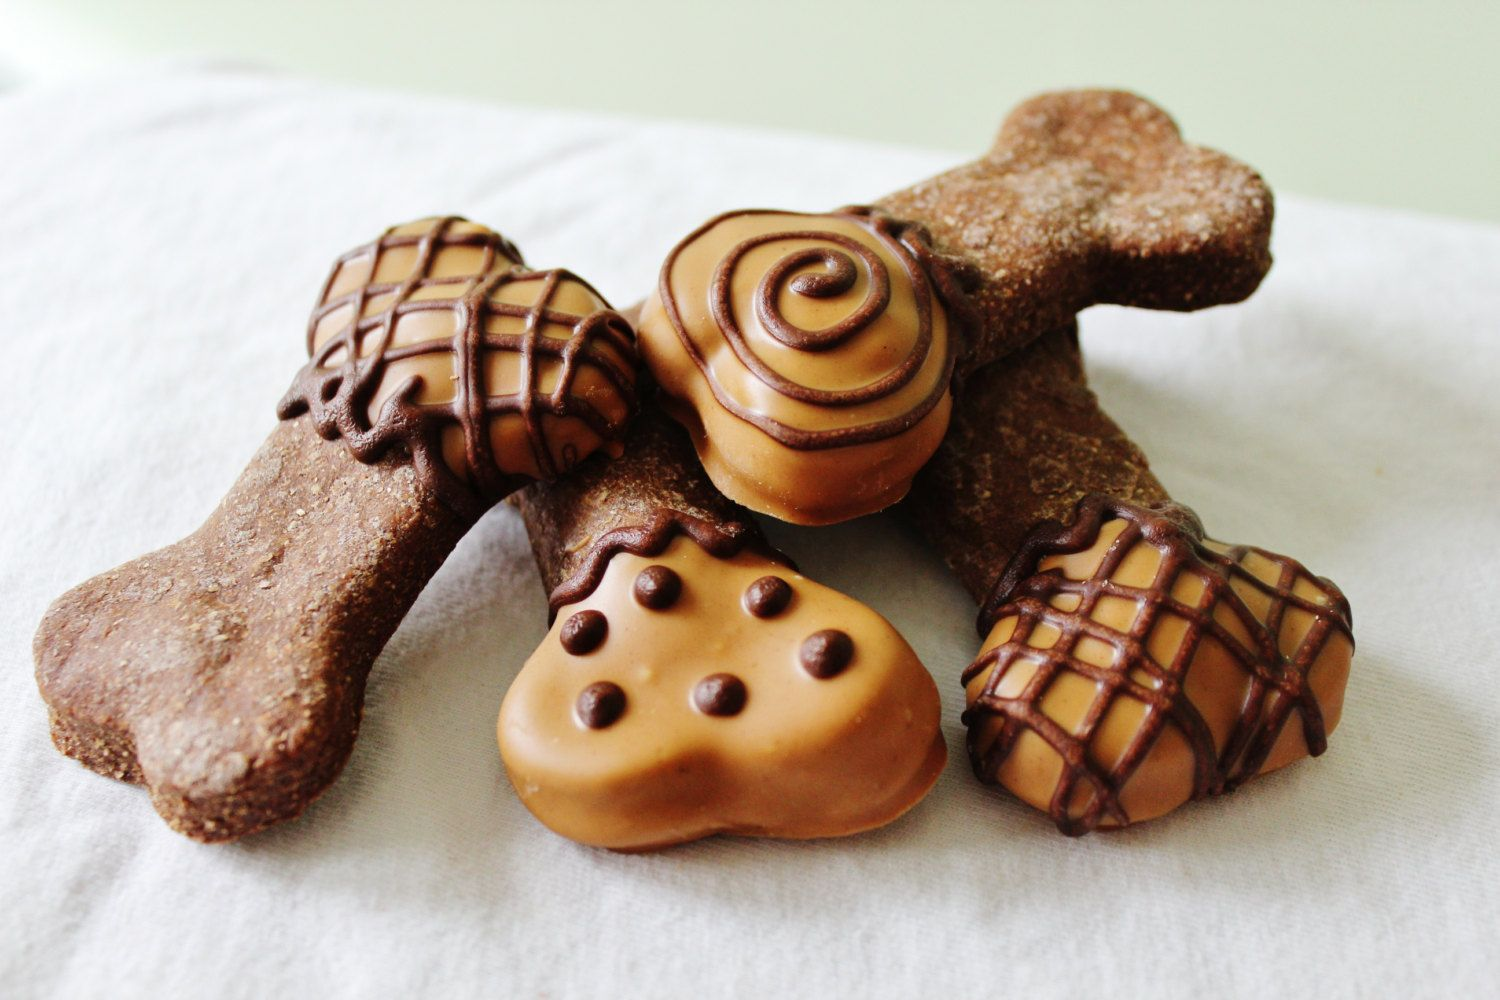 Peanut Butter Dipped Carob Dog Treats Homemade Gourmet Dog Treats